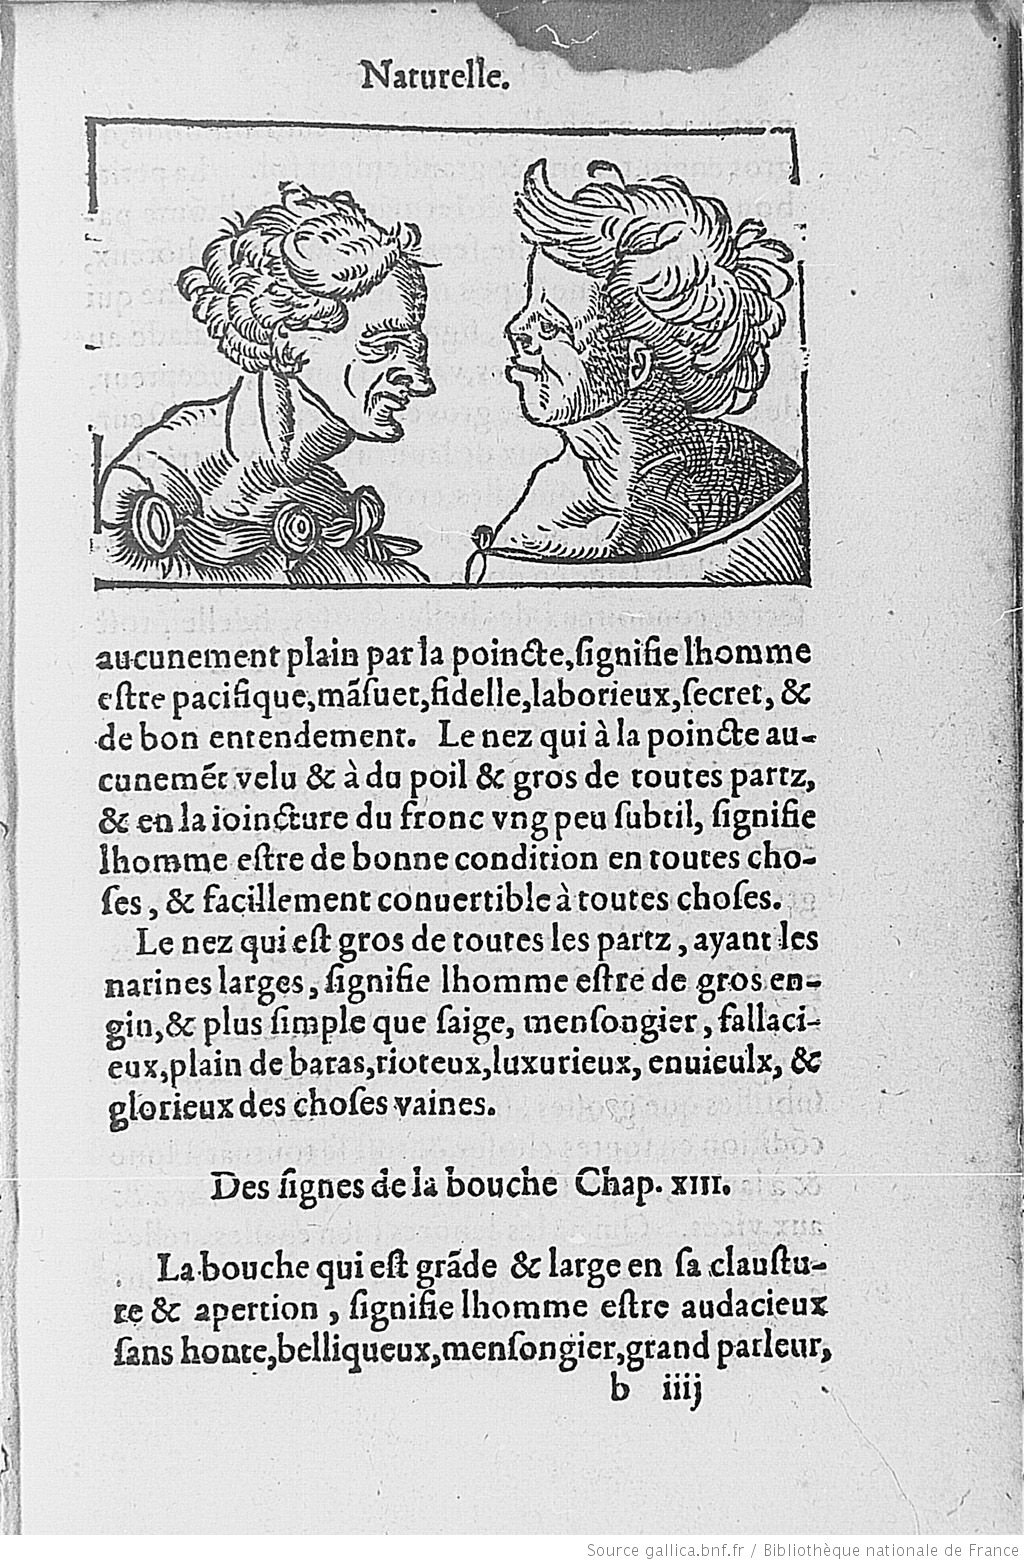 [Illustrations de Le compendion et brief enseignement de physiognomie] / [Non identifié] ; Bartholomeo della Rocca dit Cocles, aut. du texte - 15